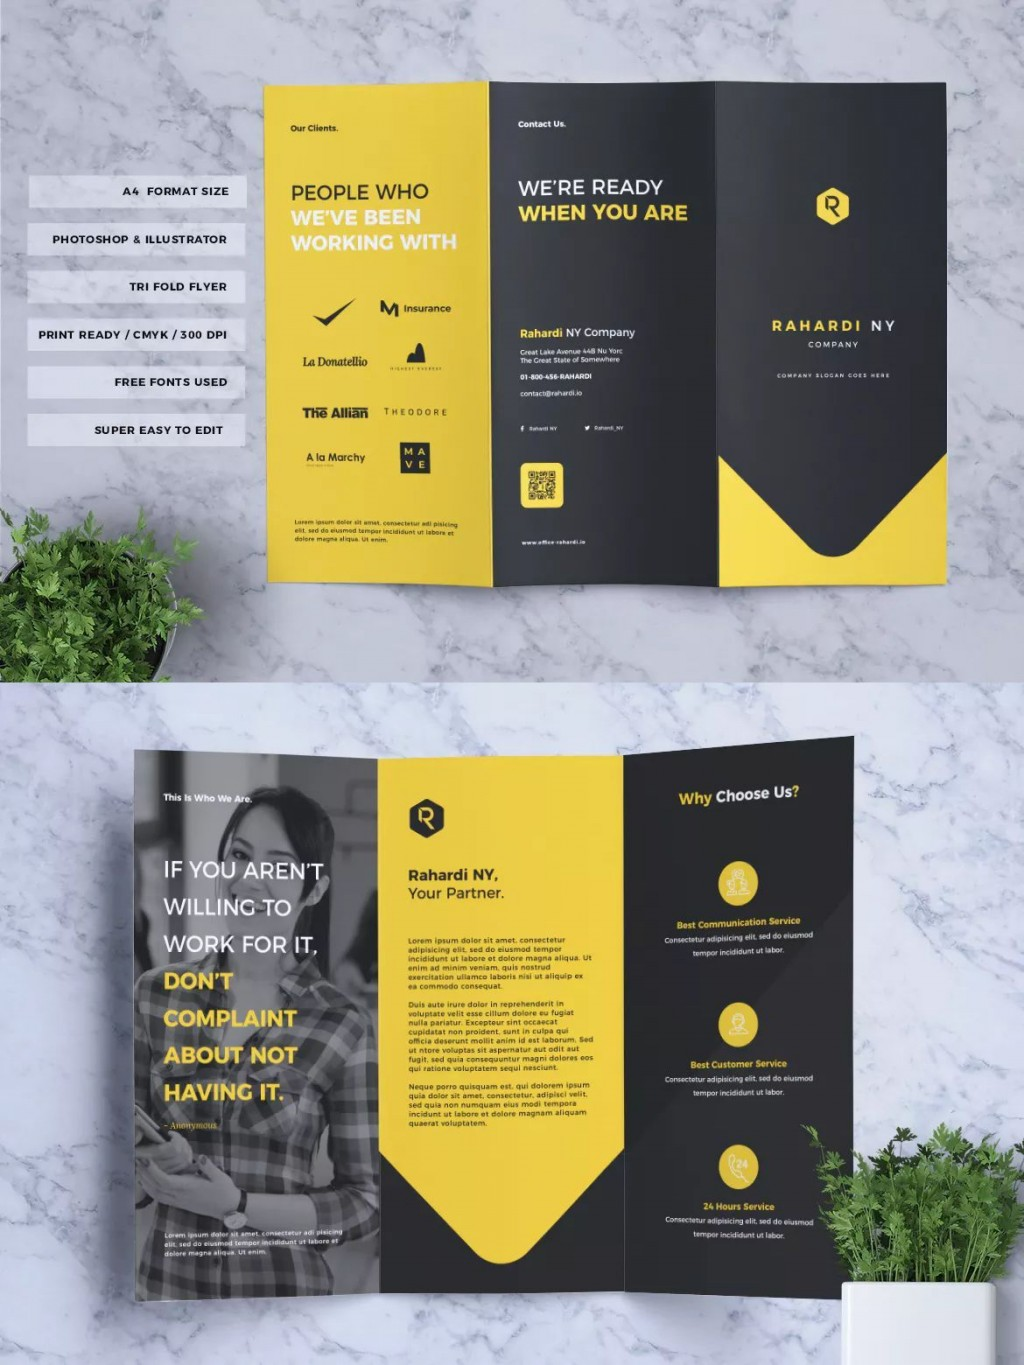 005 Fearsome Adobe Photoshop Brochure Template Free Download Design Large